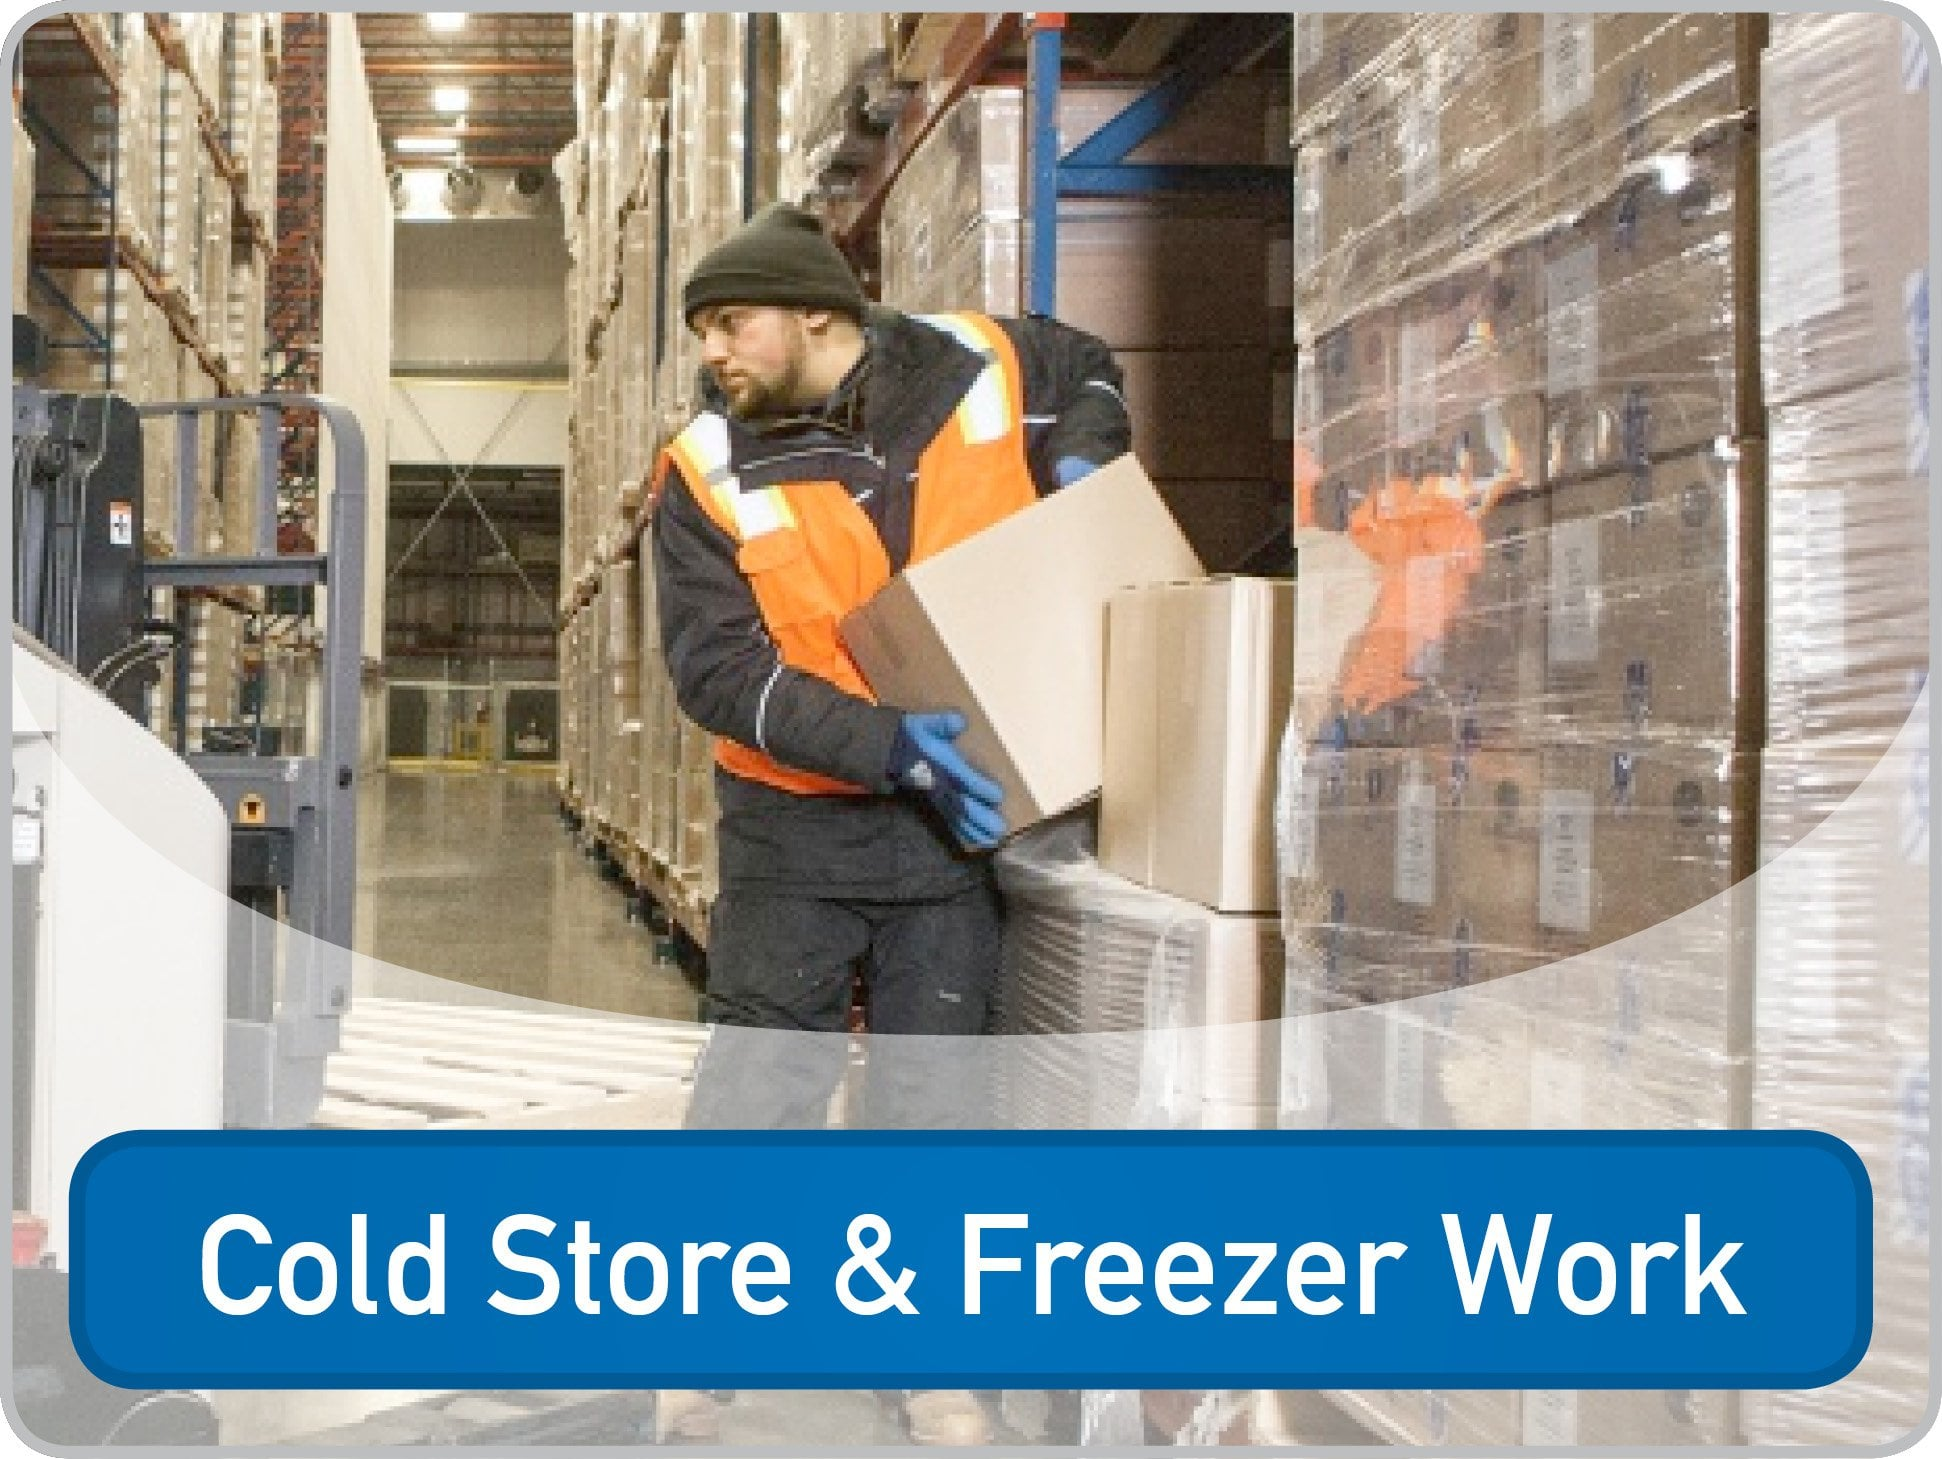 Cold Store and Freezer Work